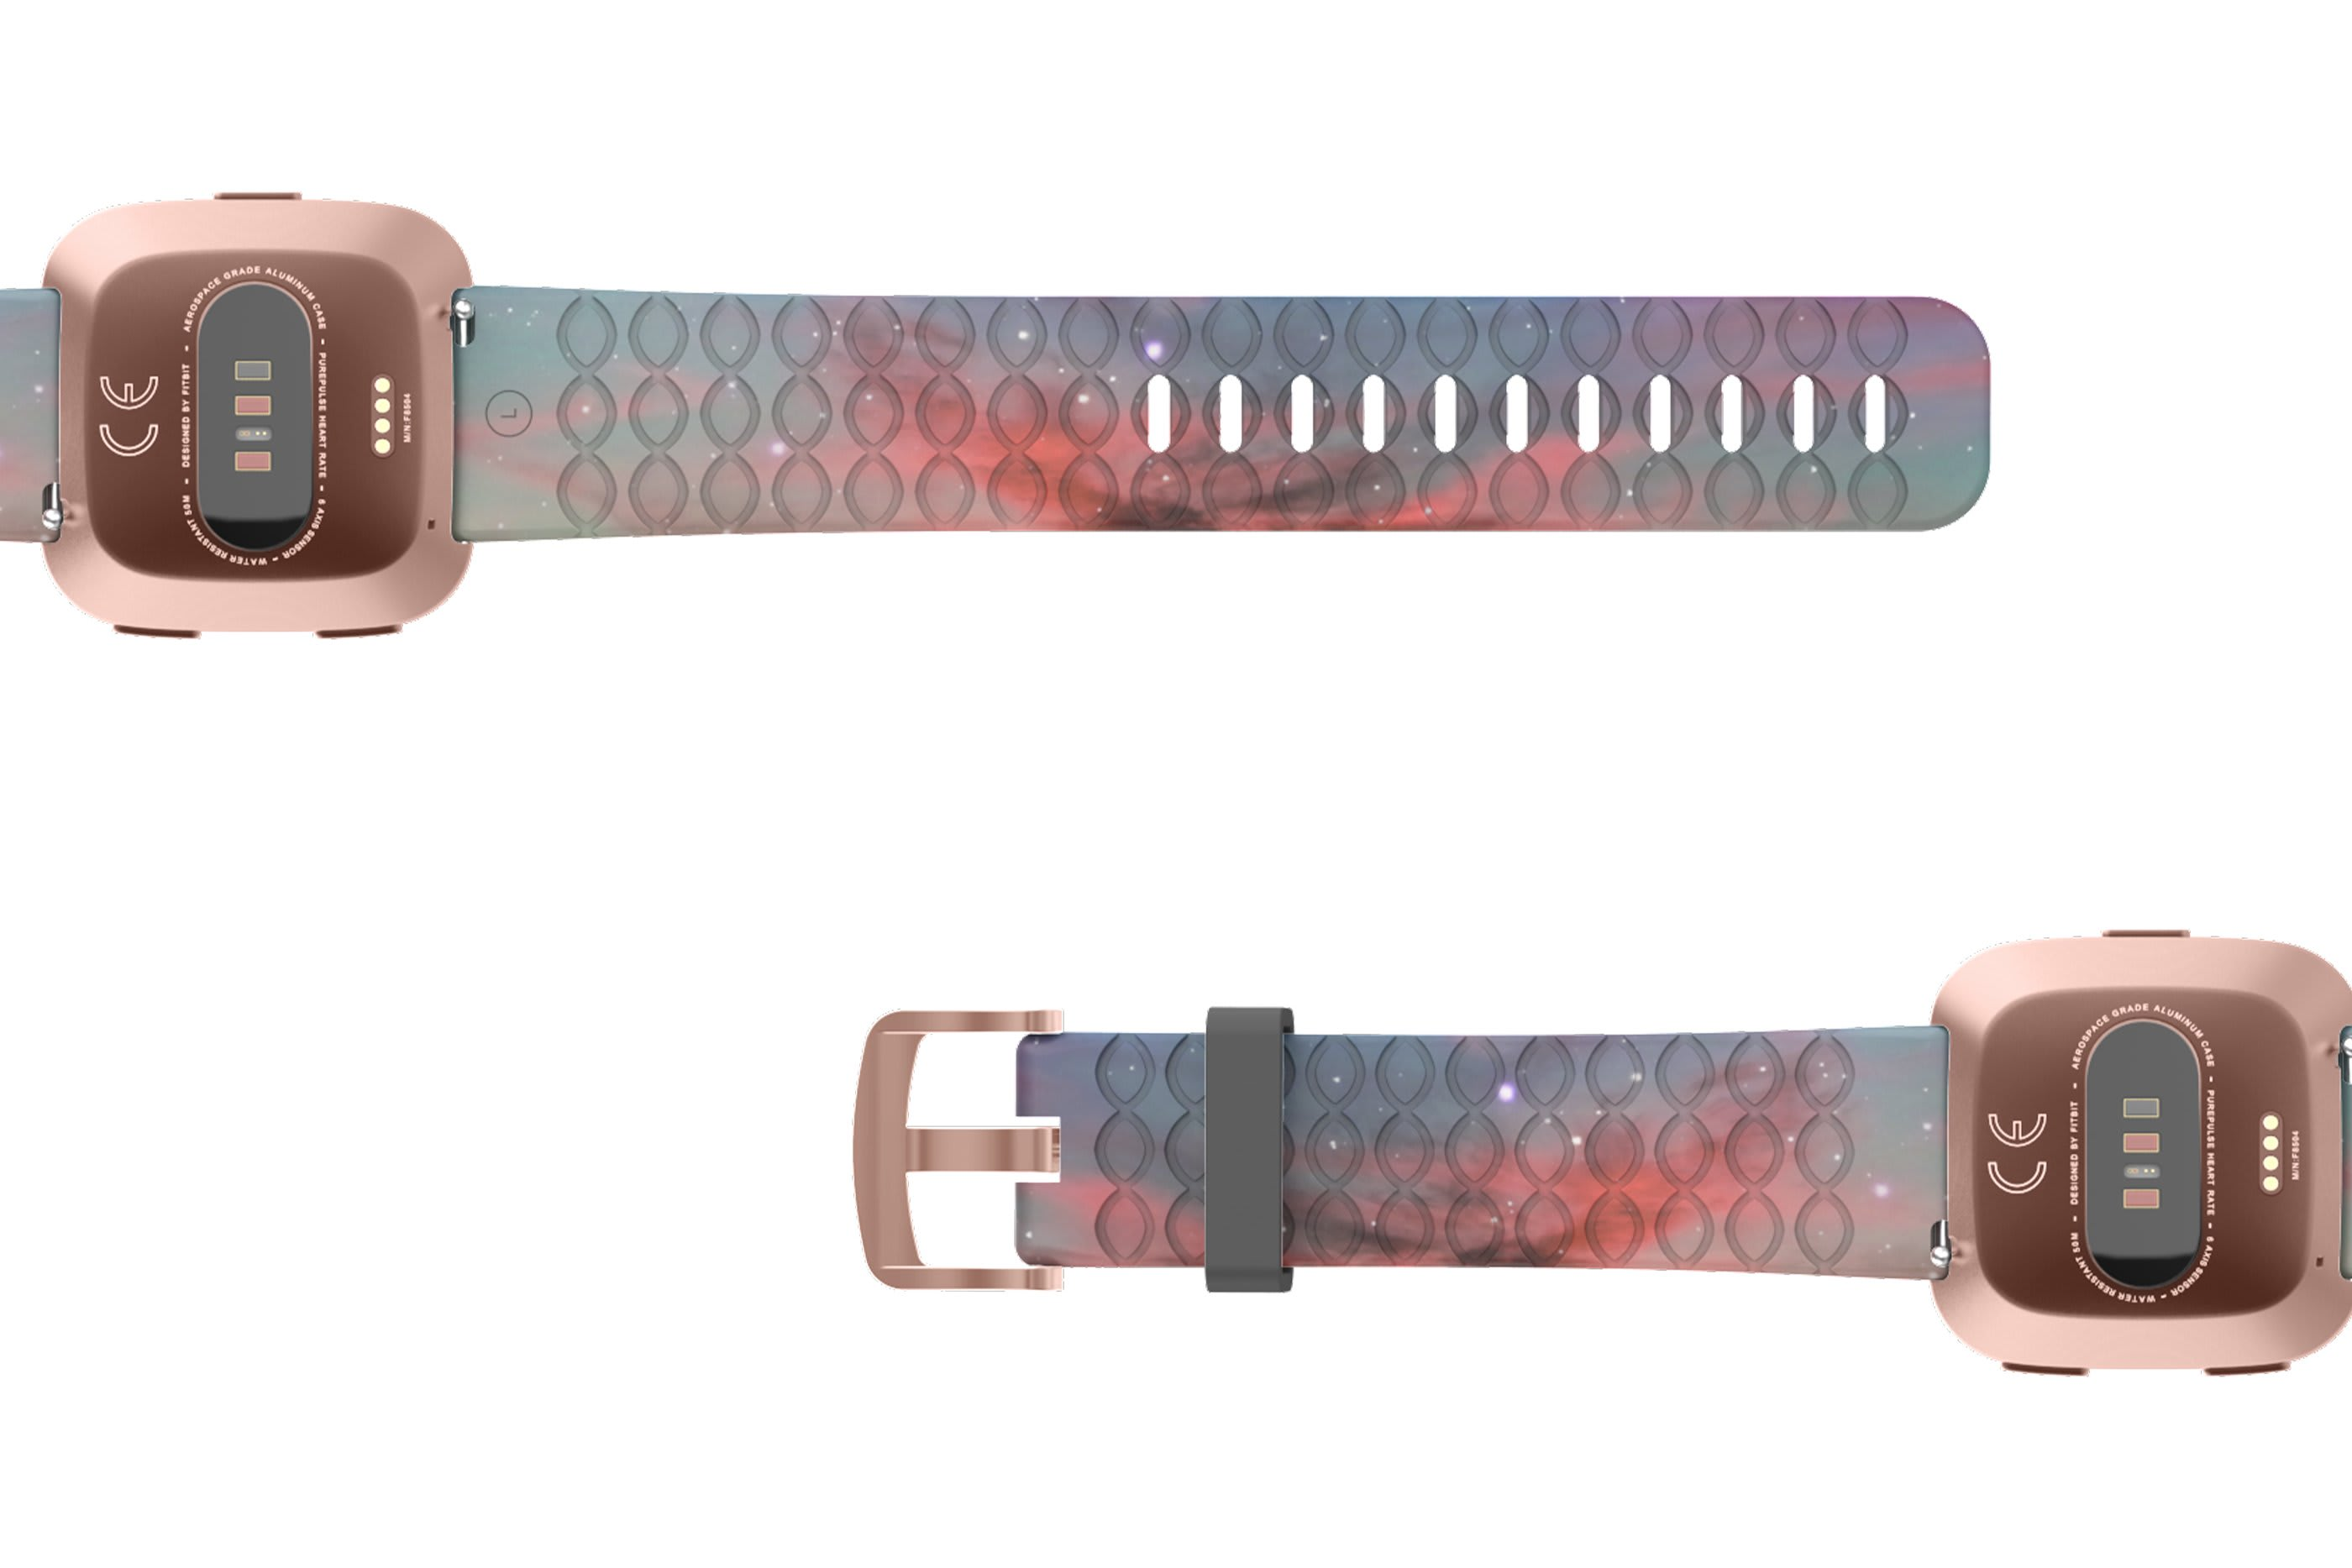 Cirrus Fitbit Versa   watch band with rose gold hardware viewed bottom up